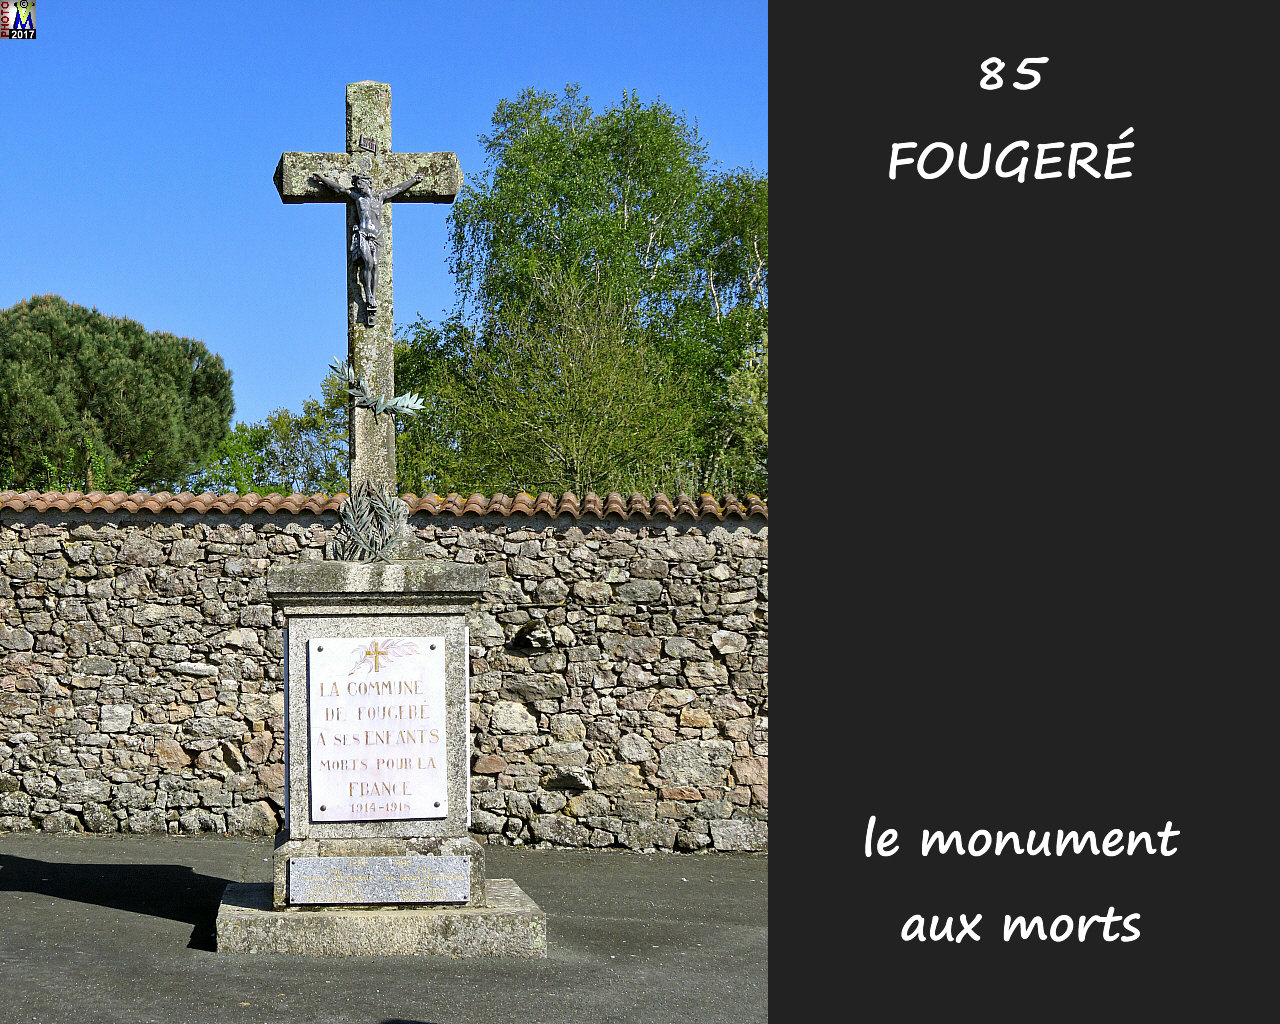 85FOUGERE_morts_1000.jpg